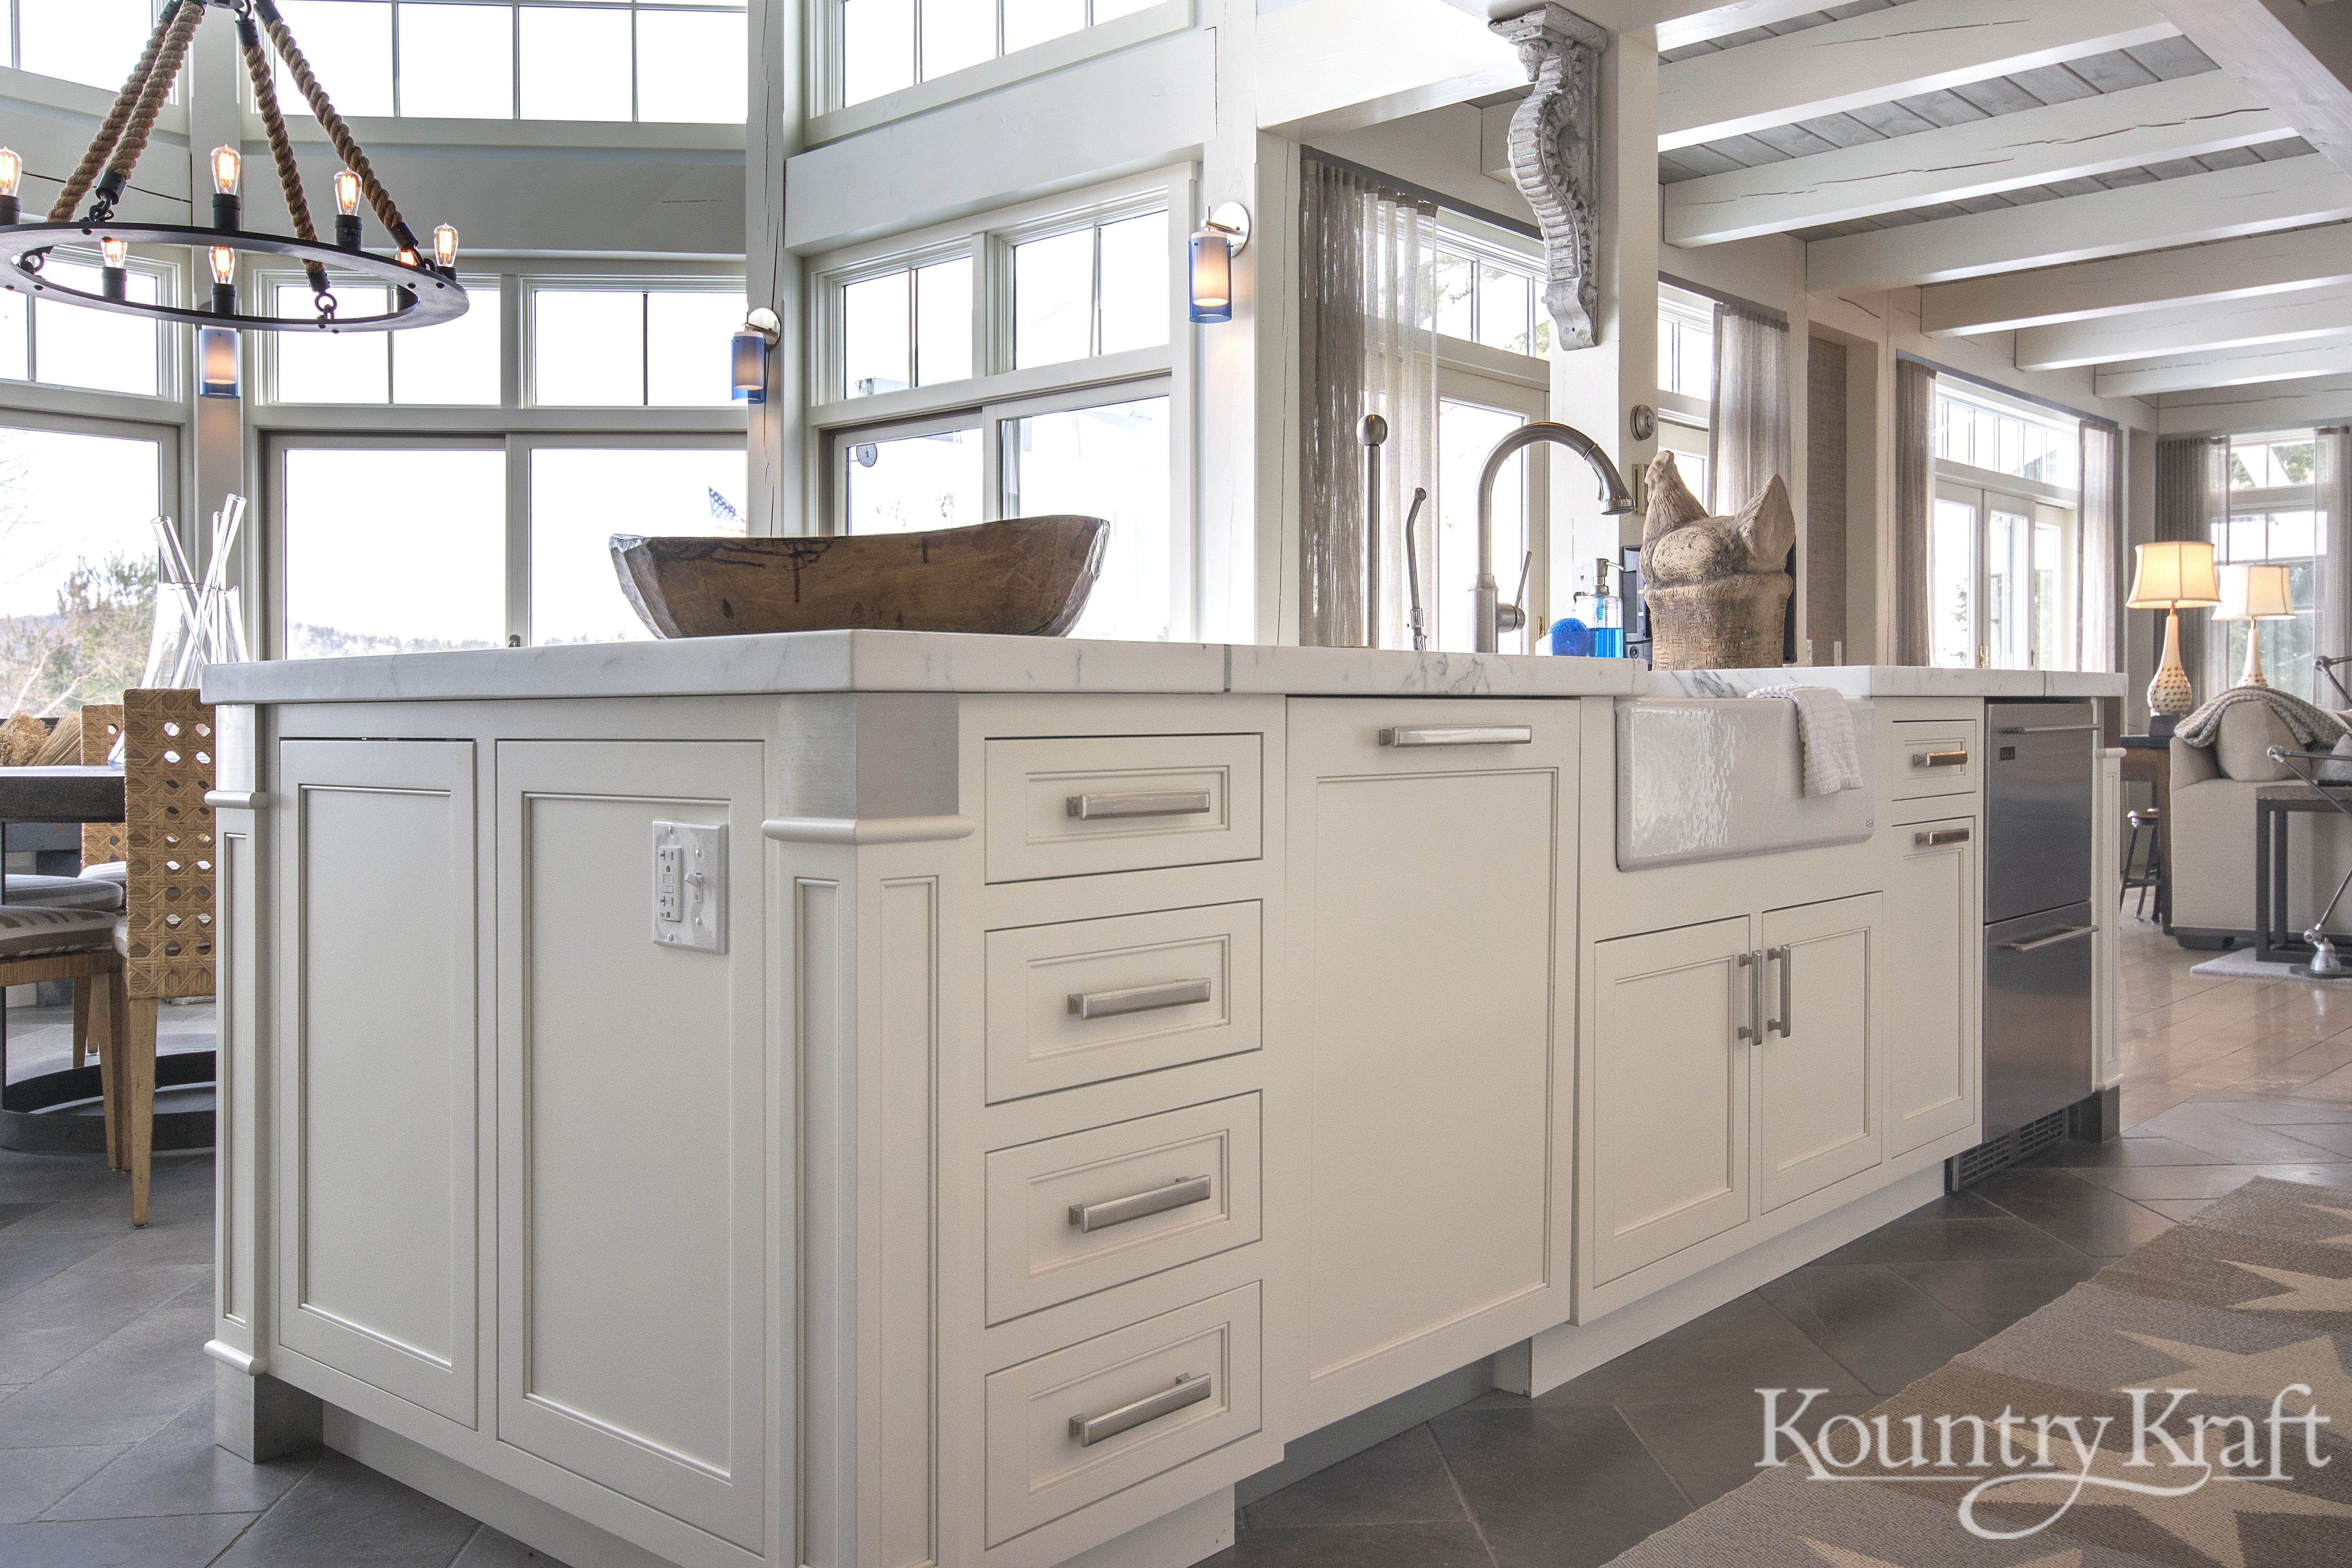 Custom Kitchen Cabinets designed by Stacy Nawoj of Pinnacle Kitchens in New Holland NH. This transitional style kitchen is an inset/no bead cabinet style ... & Custom Kitchen Cabinets designed by Stacy Nawoj of Pinnacle Kitchens ...